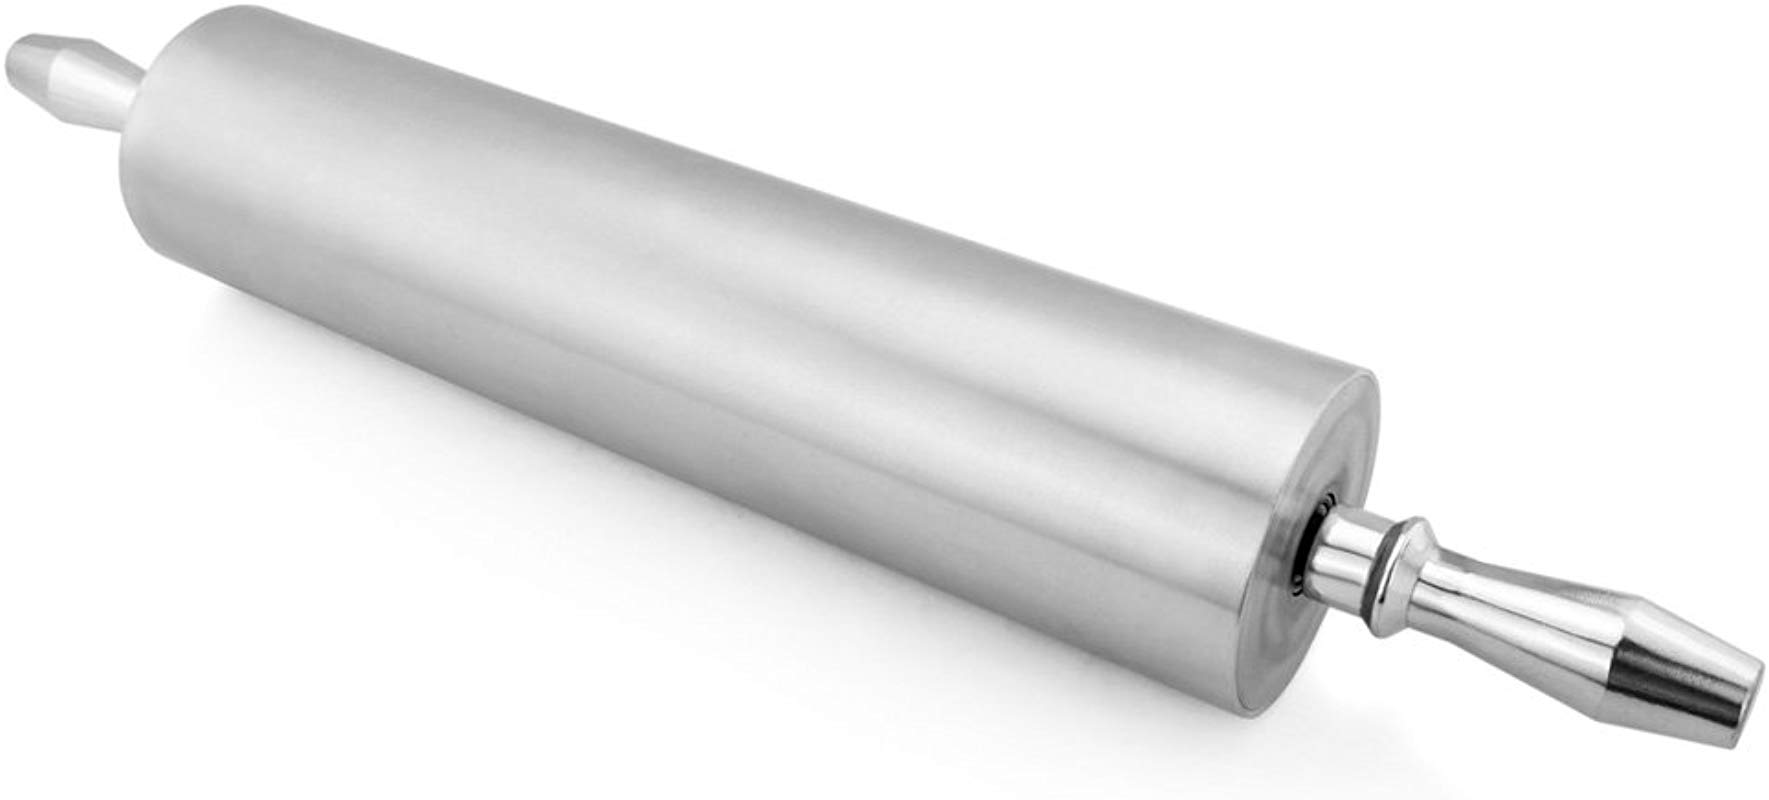 New Star Foodservice 37517 Extra Heavy Duty Restaurant Aluminum Rolling Pin 15 Inch Silver